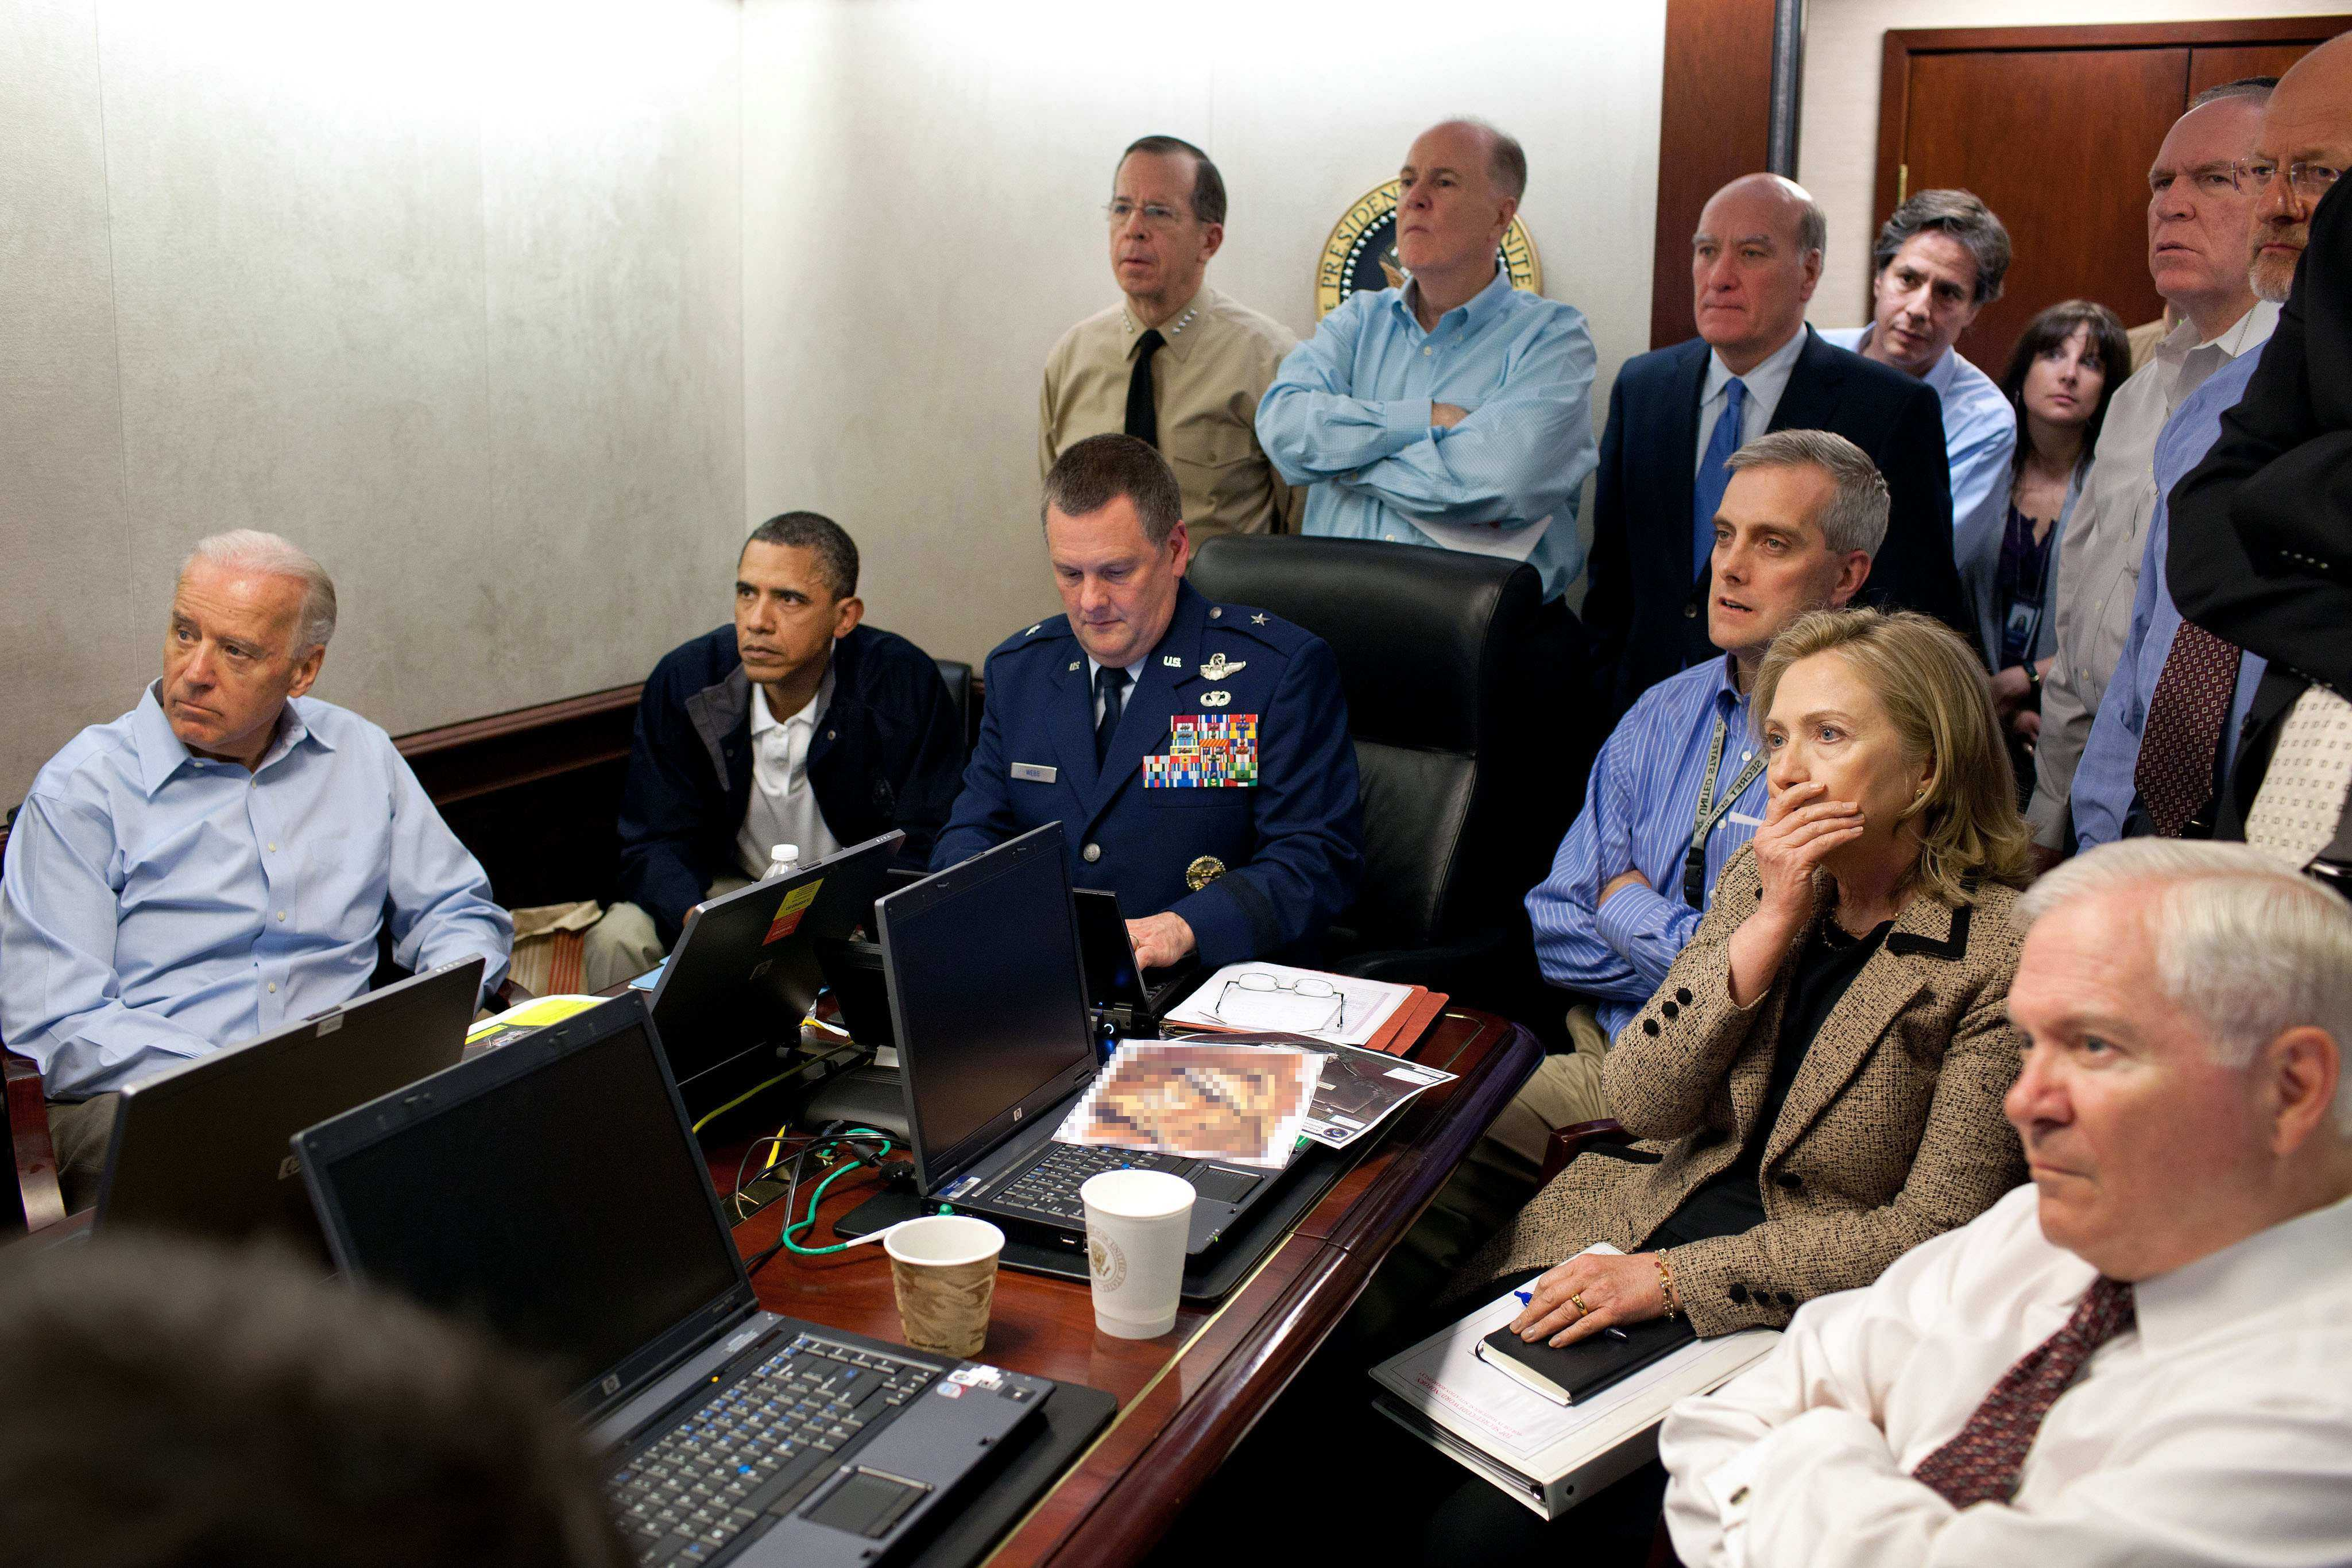 May 2011 In this photo released by the White House, Secretary of State Hillary Rodham Clinton, President Barack Obama and Vice President Joe Biden, along with with members of the national security team, receive an update on the mission against Osama bin Laden in the Situation Room of the White House in Washington on May 1, 2011.This photo WAS digitally altered by the White House to diffuse the information on the papers on the table.